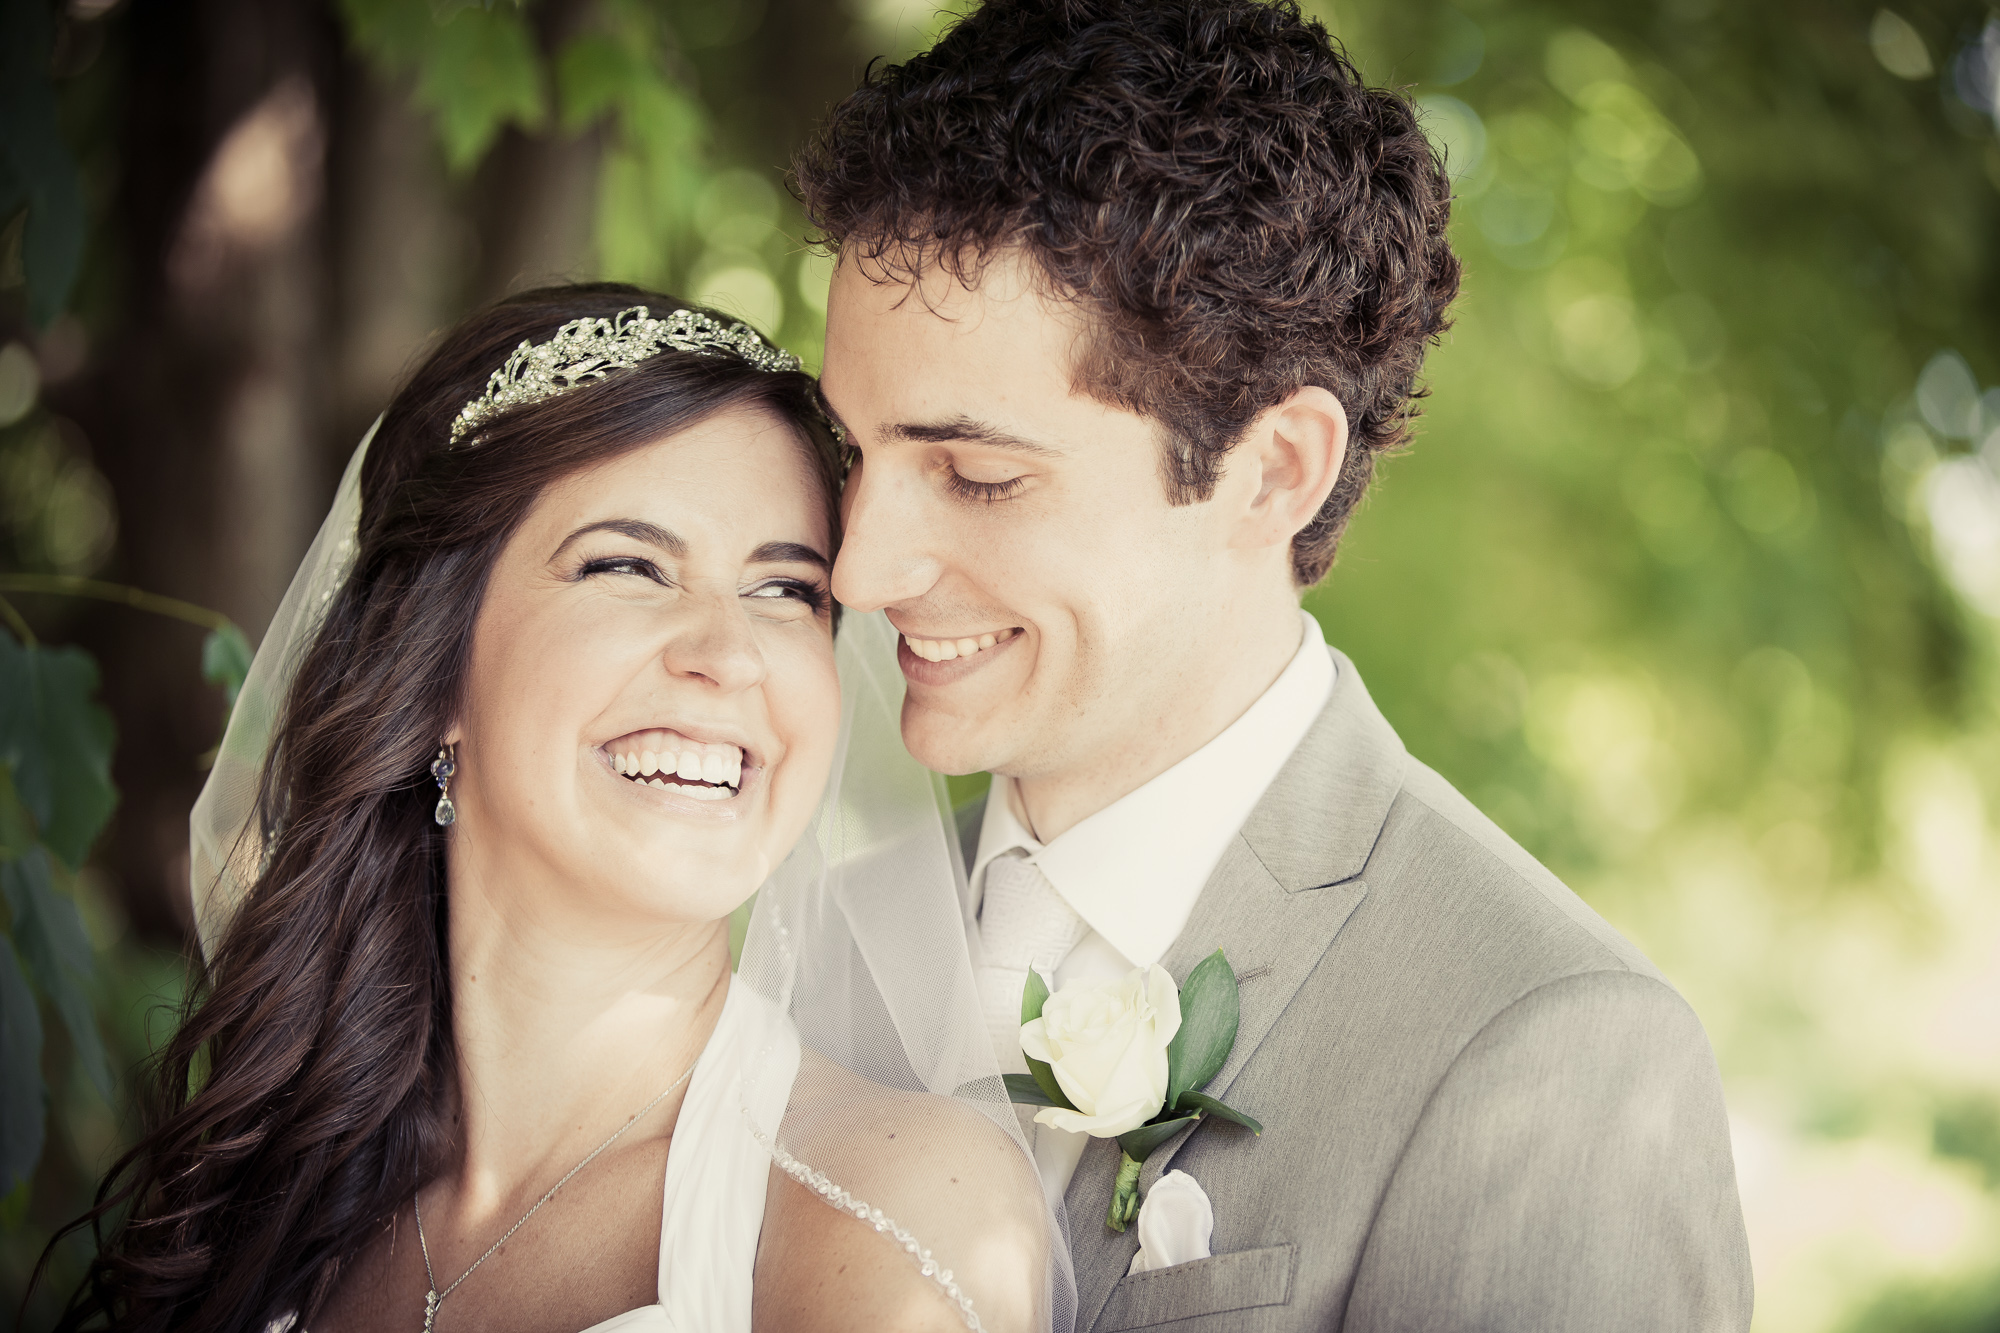 Beautiful Wedding Photography - Jenna Perfette Photography